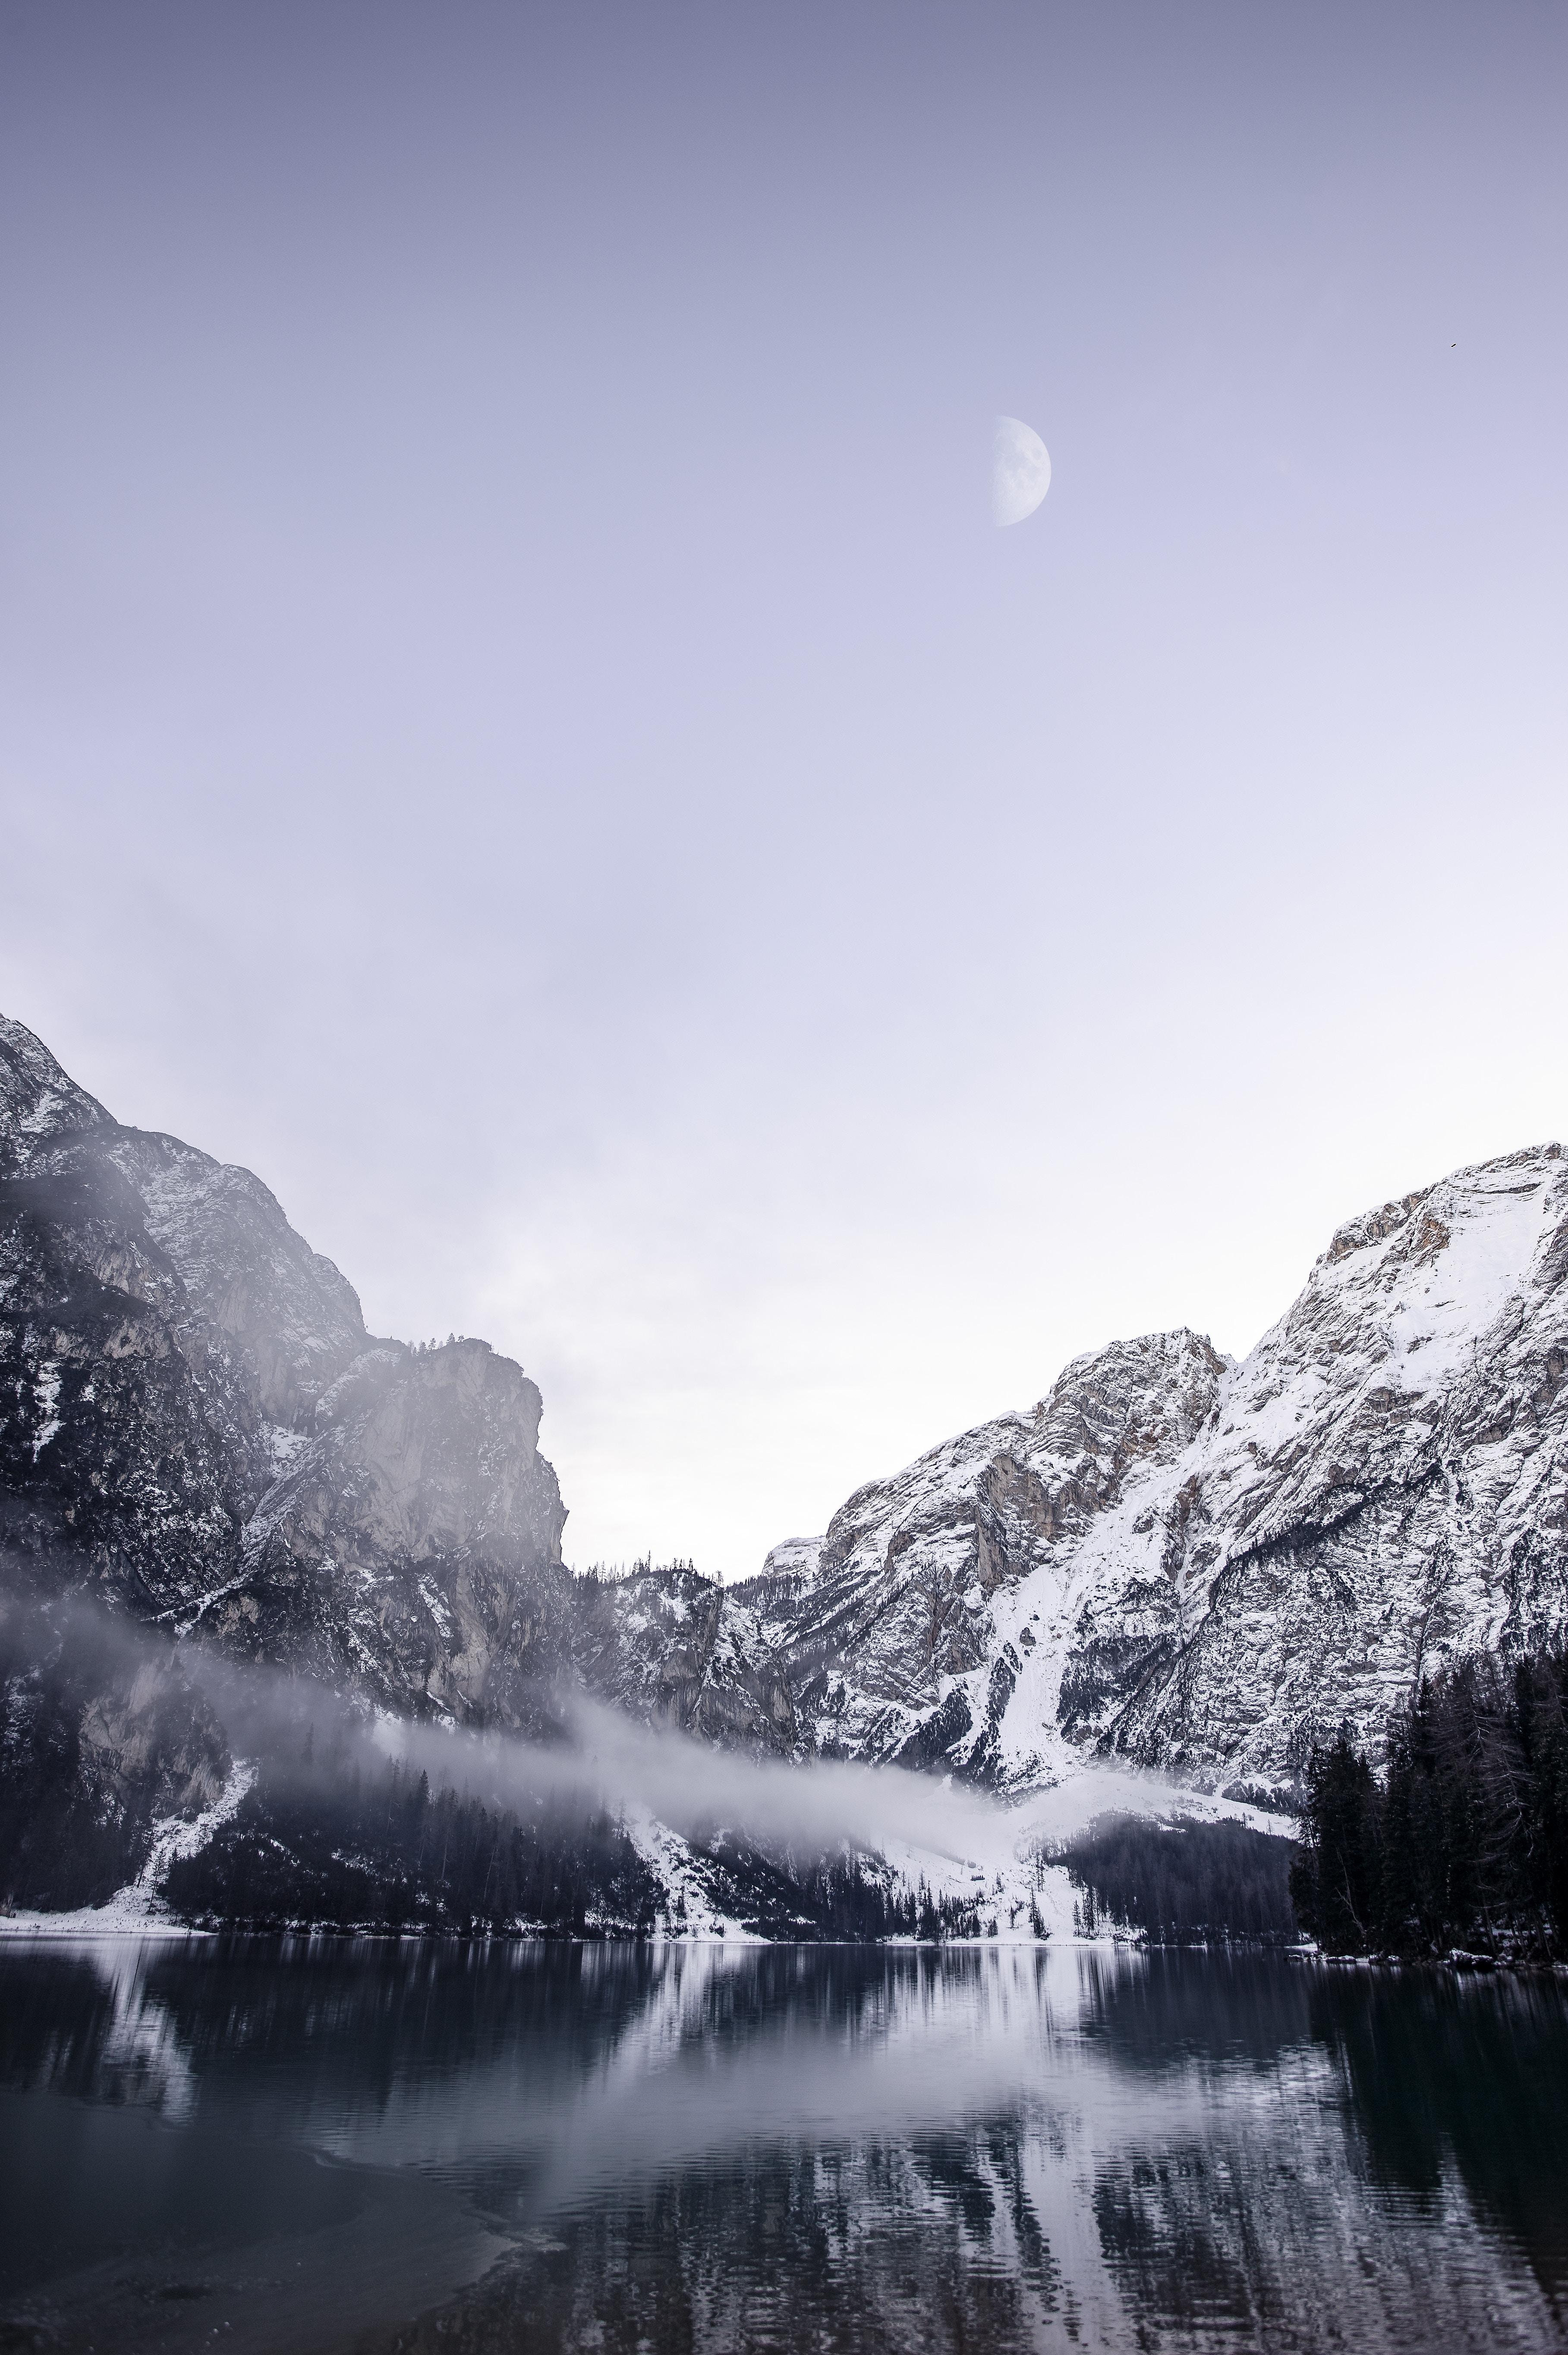 146509 download wallpaper Nature, Lake, Fog, Snow Covered, Snowbound, Mountains, Landscape screensavers and pictures for free